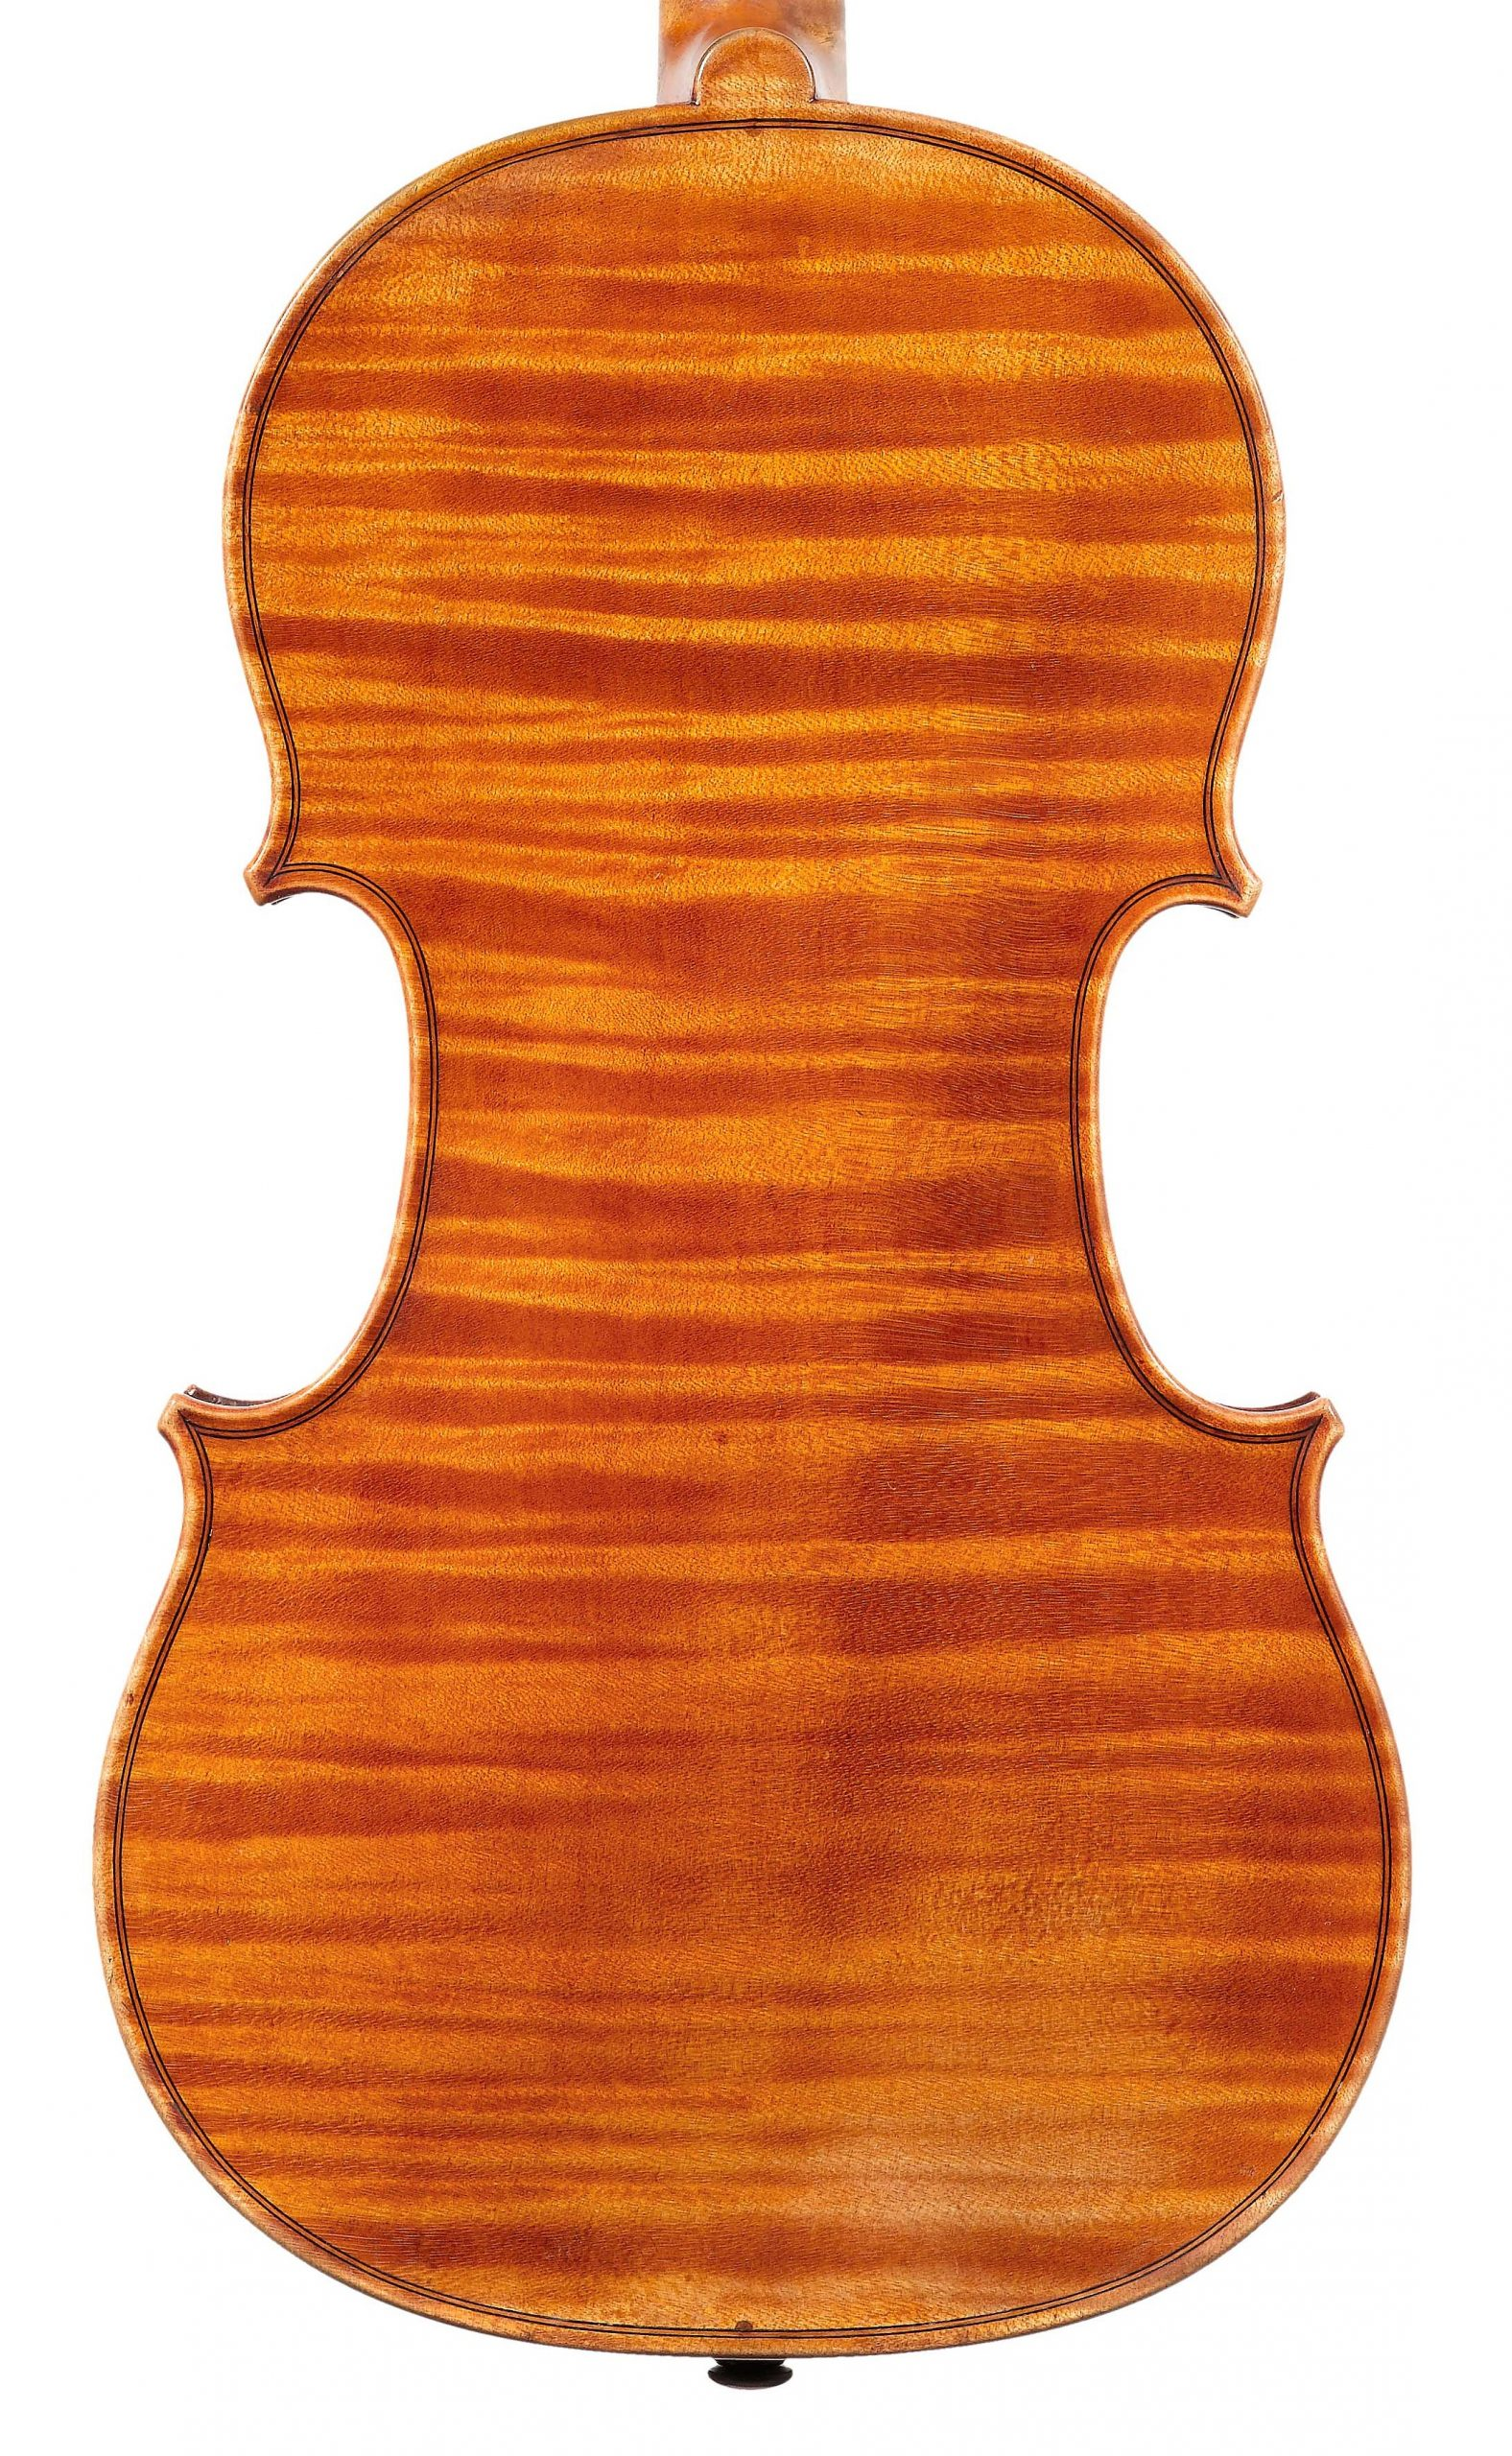 Back of St. Jean from the Evangelists quartet by JB Vuillaume, dated 1863